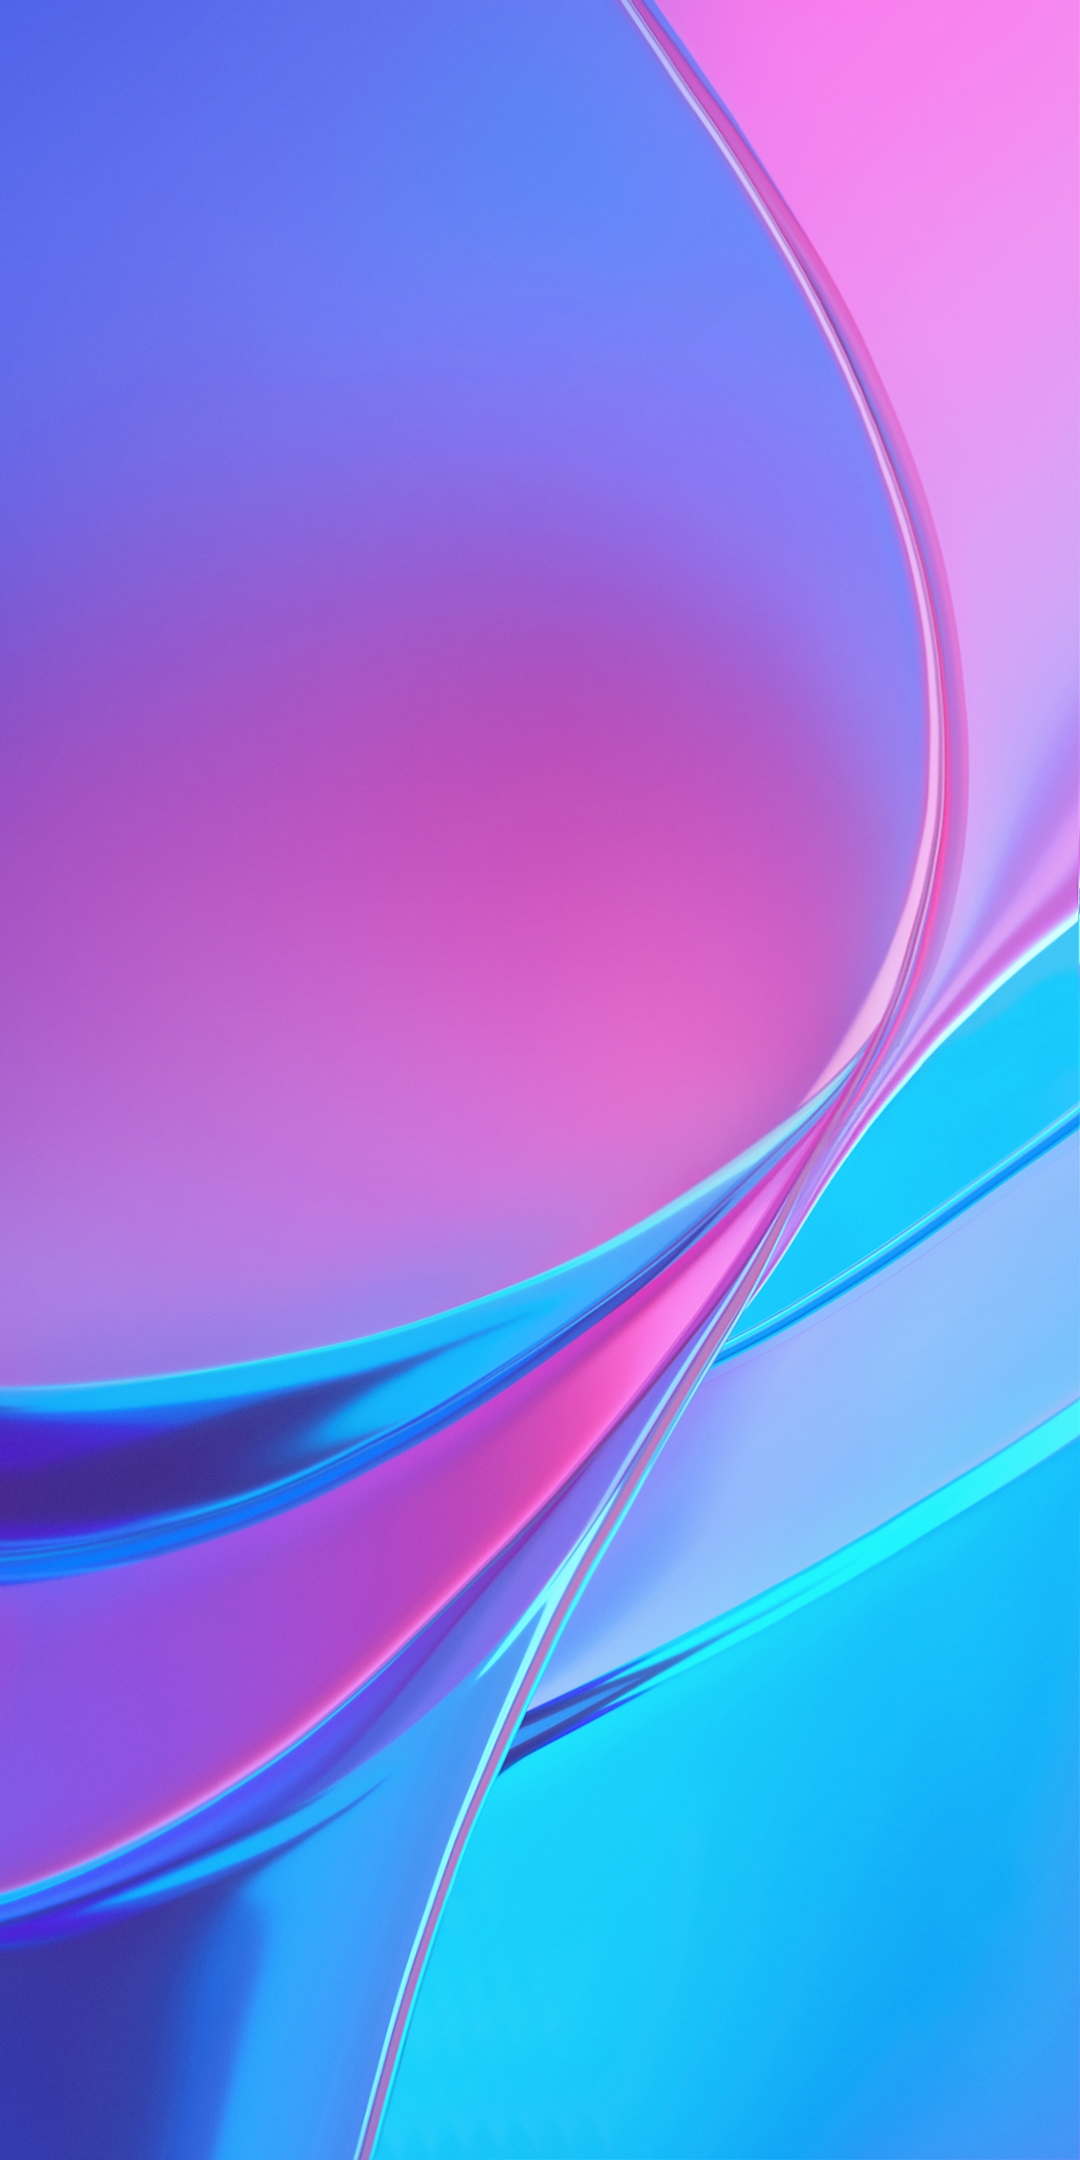 Download Xiaomi Mi 9 Wallpapers To Customize Your Old Smartphone Phandroid